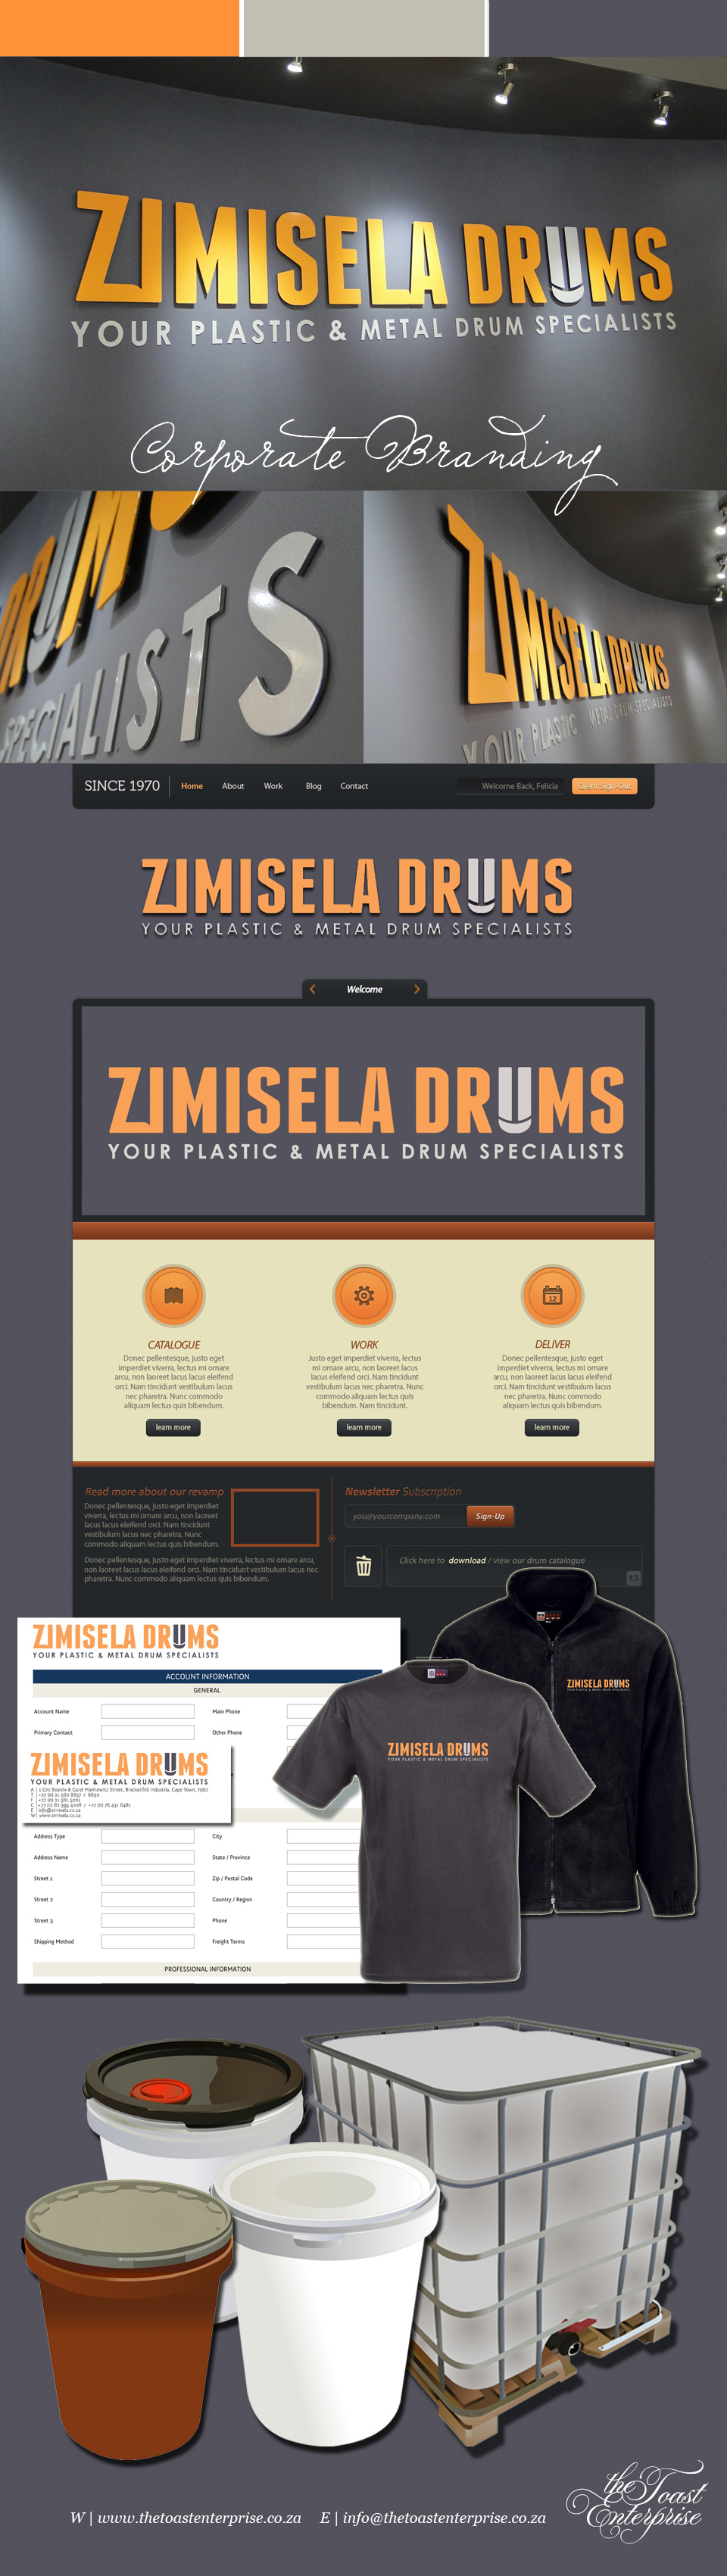 Zimisela Drums Corporate Identity & Signage